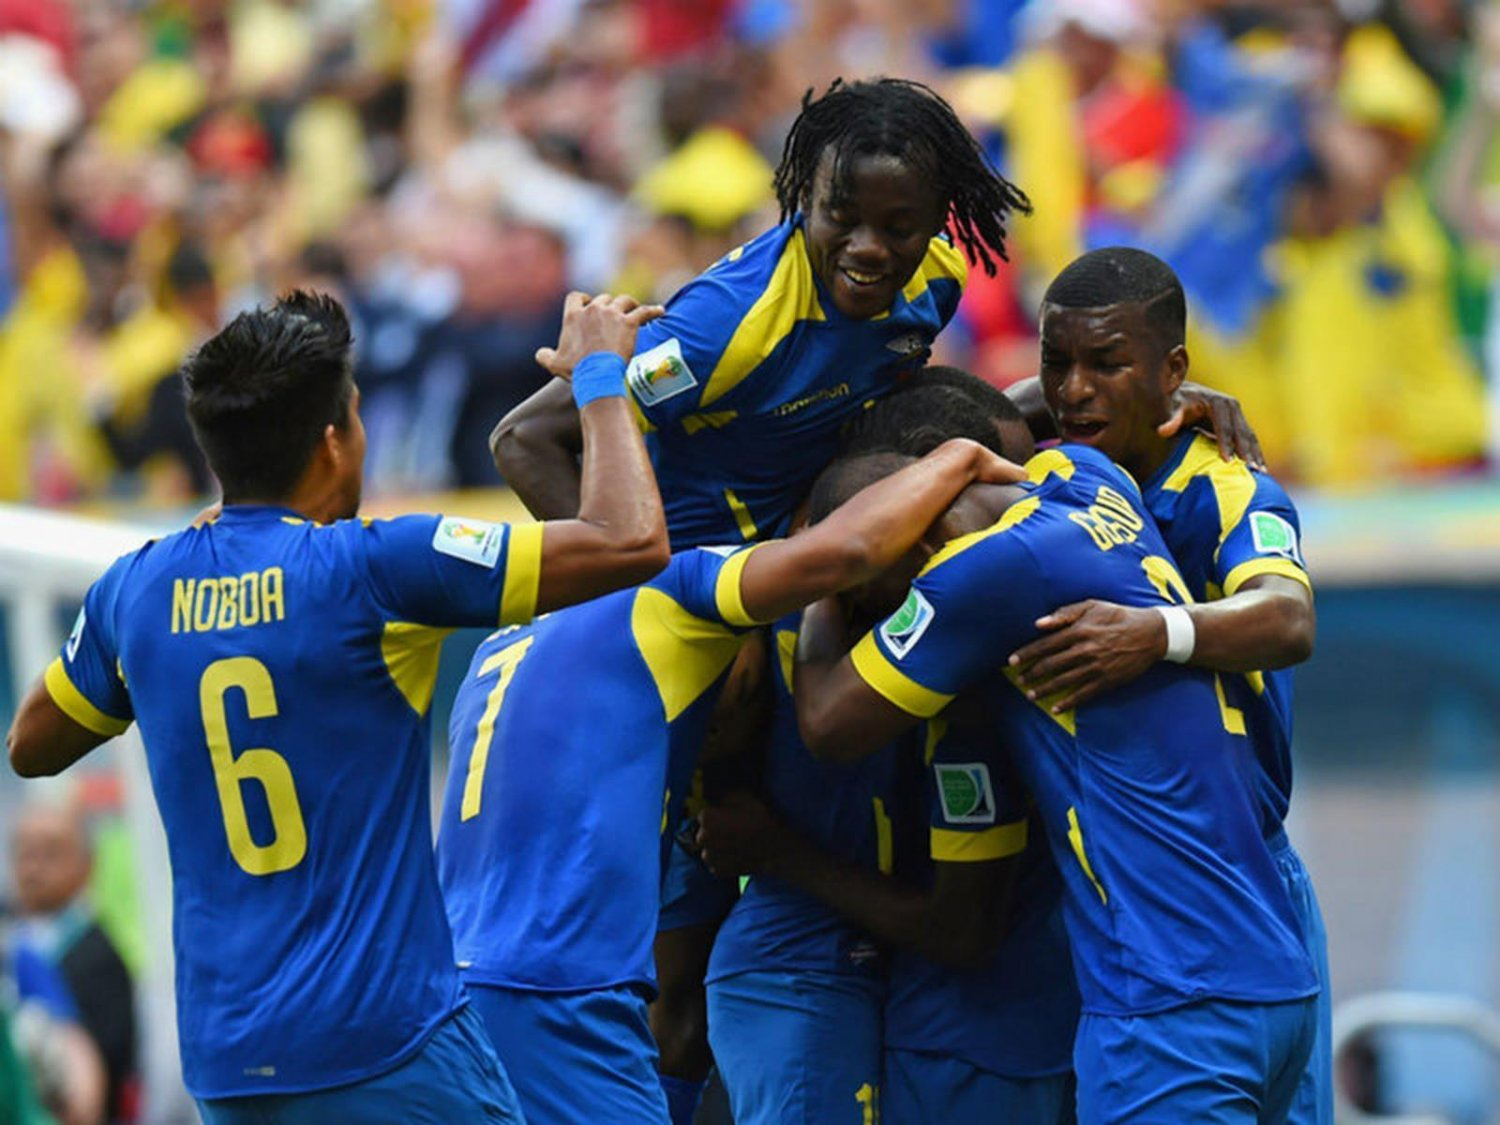 316 - 8 X 6 Photo - Football - FIFA World Cup 2014 - Switzerland V Ecuador - Enner Valencia